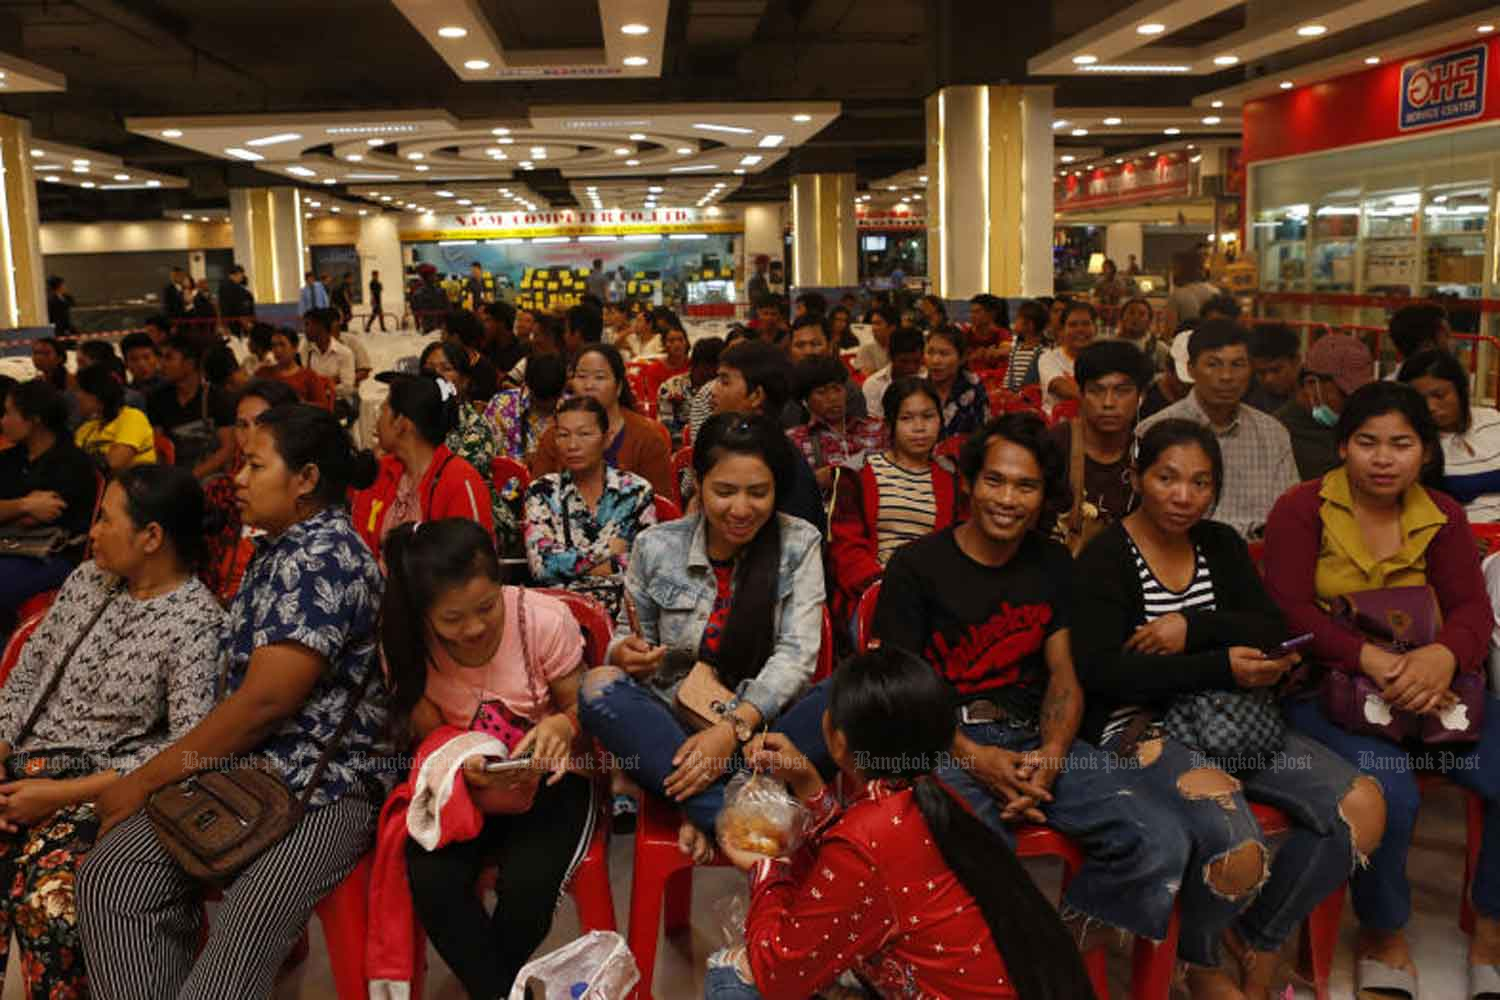 Migrant workers wait for their registration in Pathum Thani province. (Bangkok Post file photo)